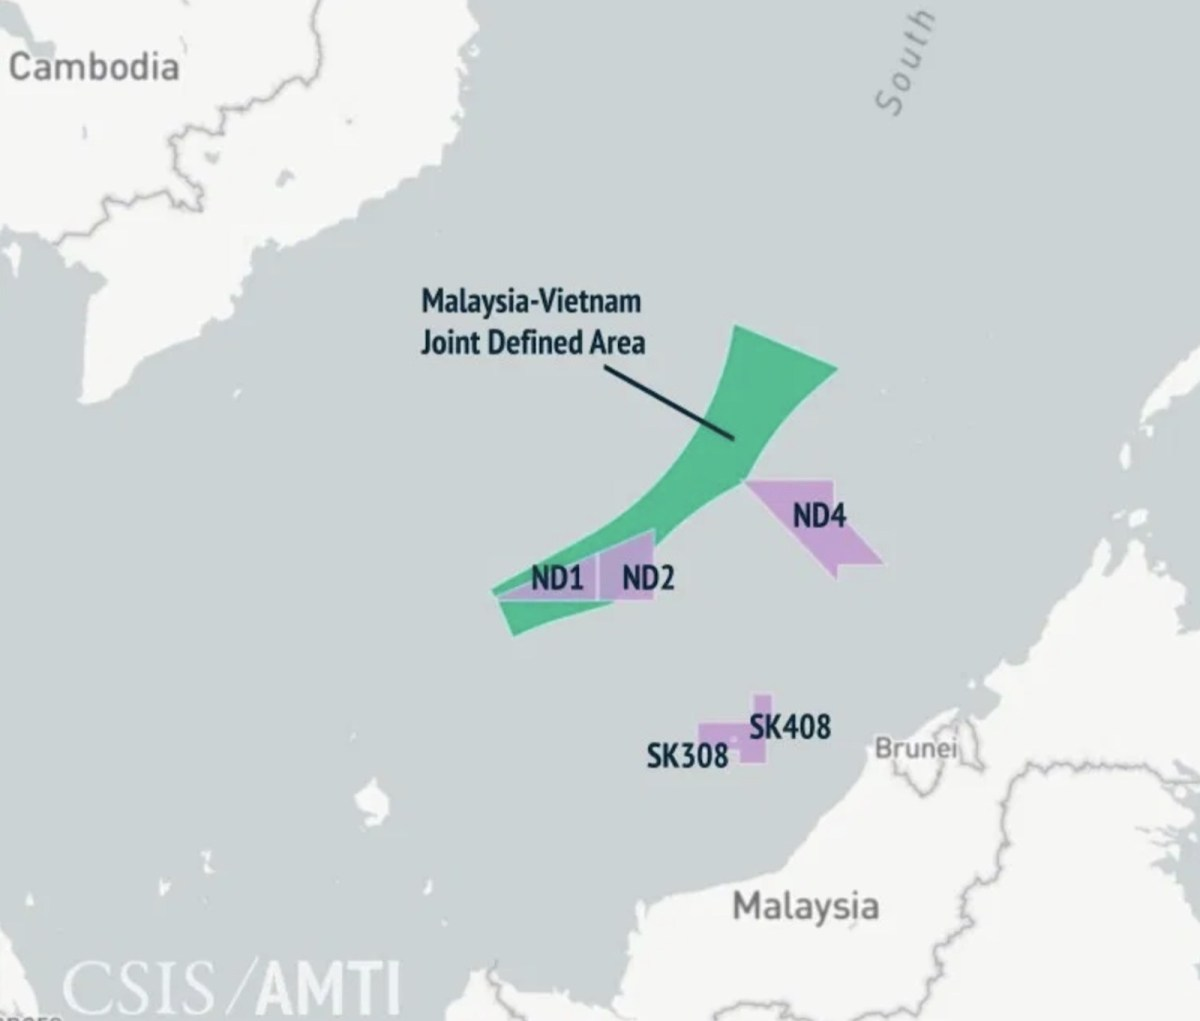 Malaysia-Vietnam-JDA-South-China-Sea-ATMI-Map